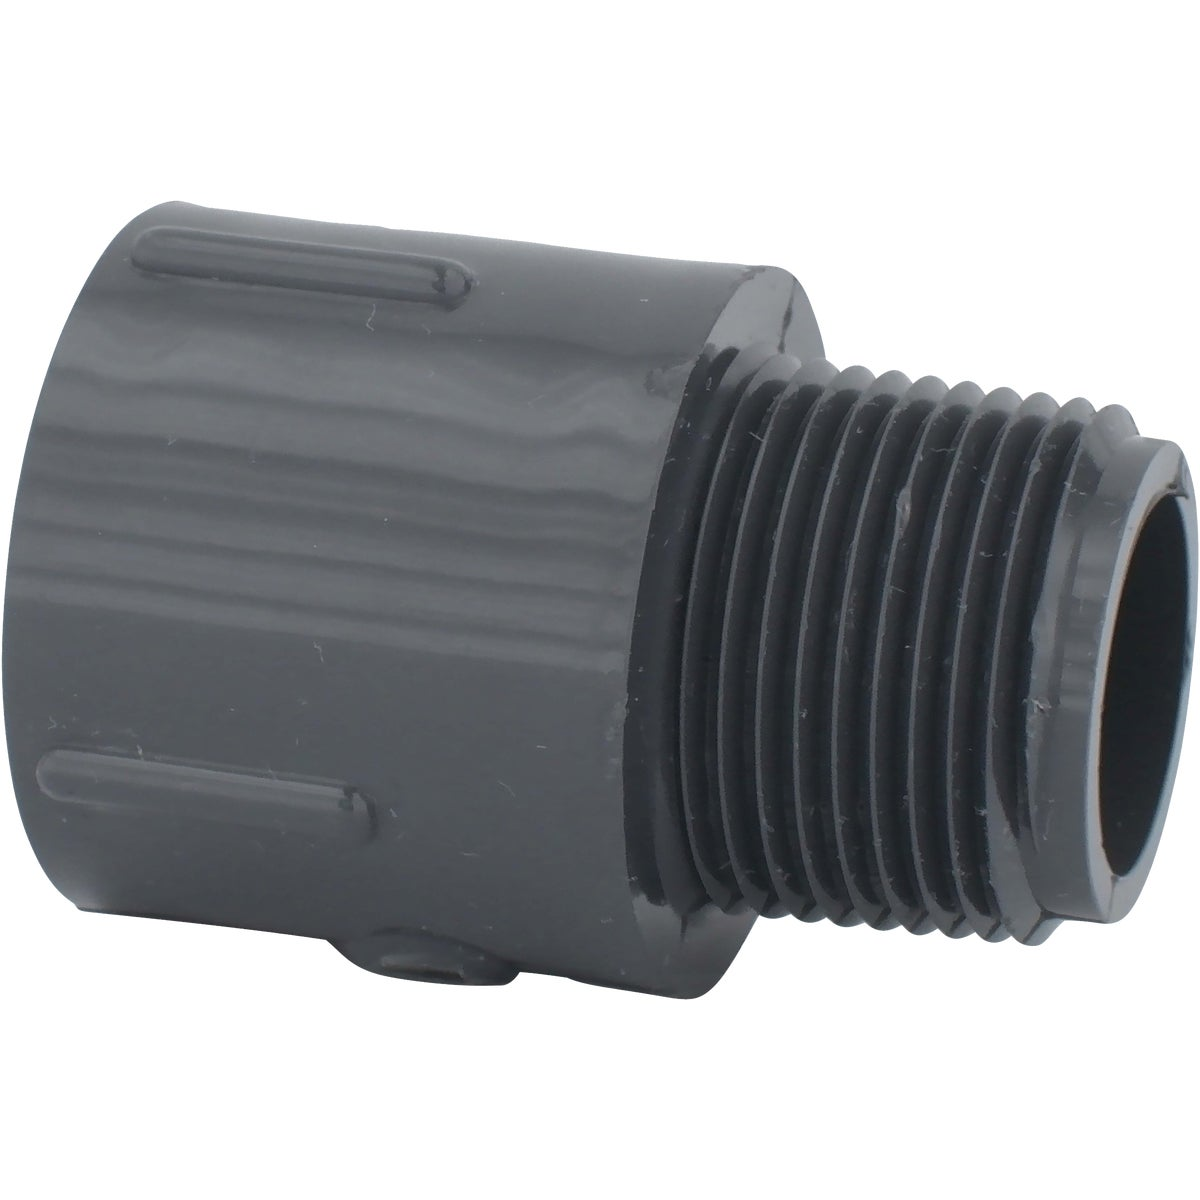 "3/4"" SCH80 MALE ADAPTER"